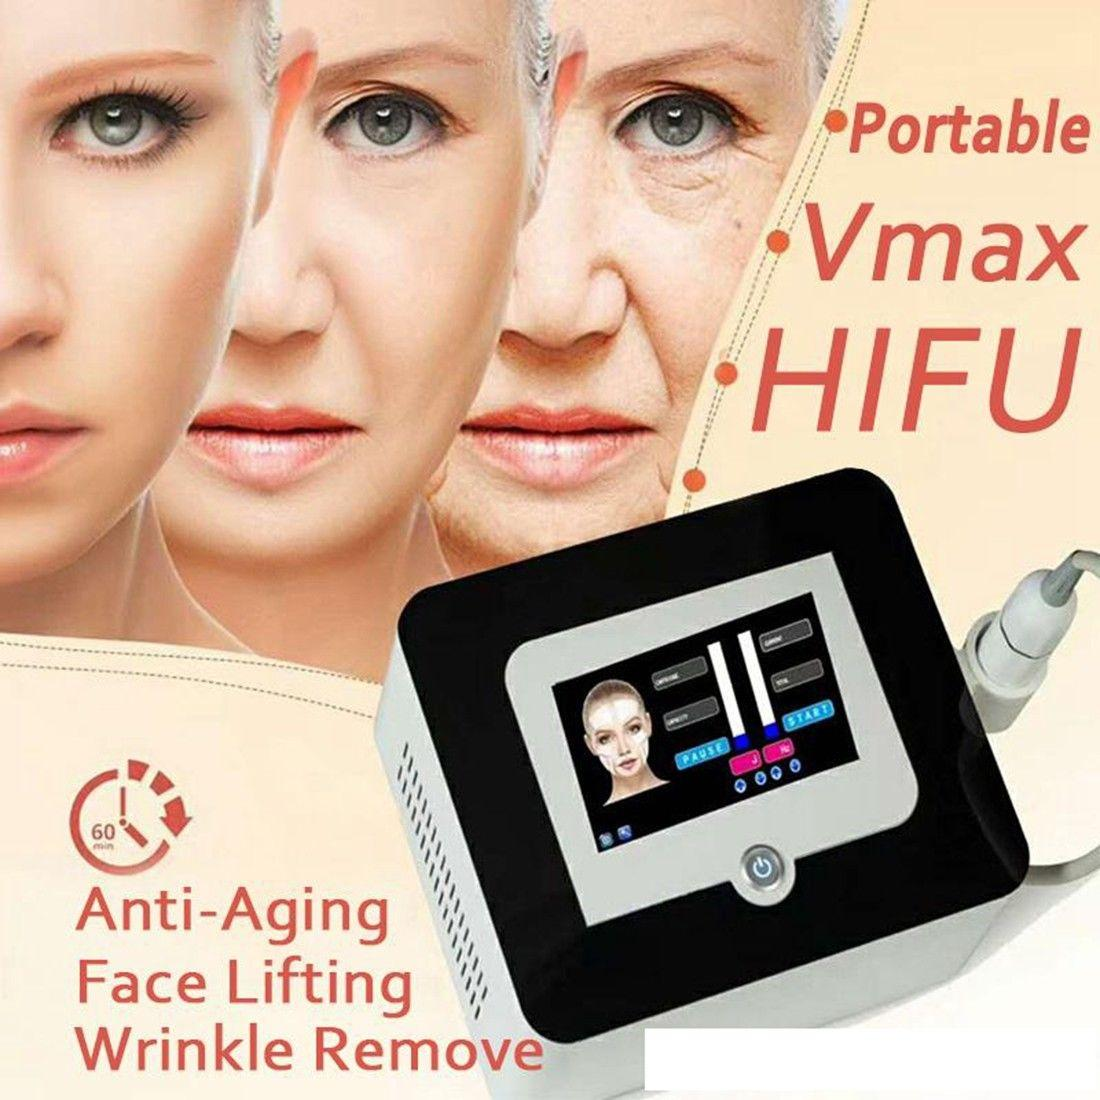 Hight Quality!!! Good Results Hifu Face Lift High Intensity Focused Ultrasound Anti Aging Wrinkle Removal Vmax Hifu Machine Cartridge Tips